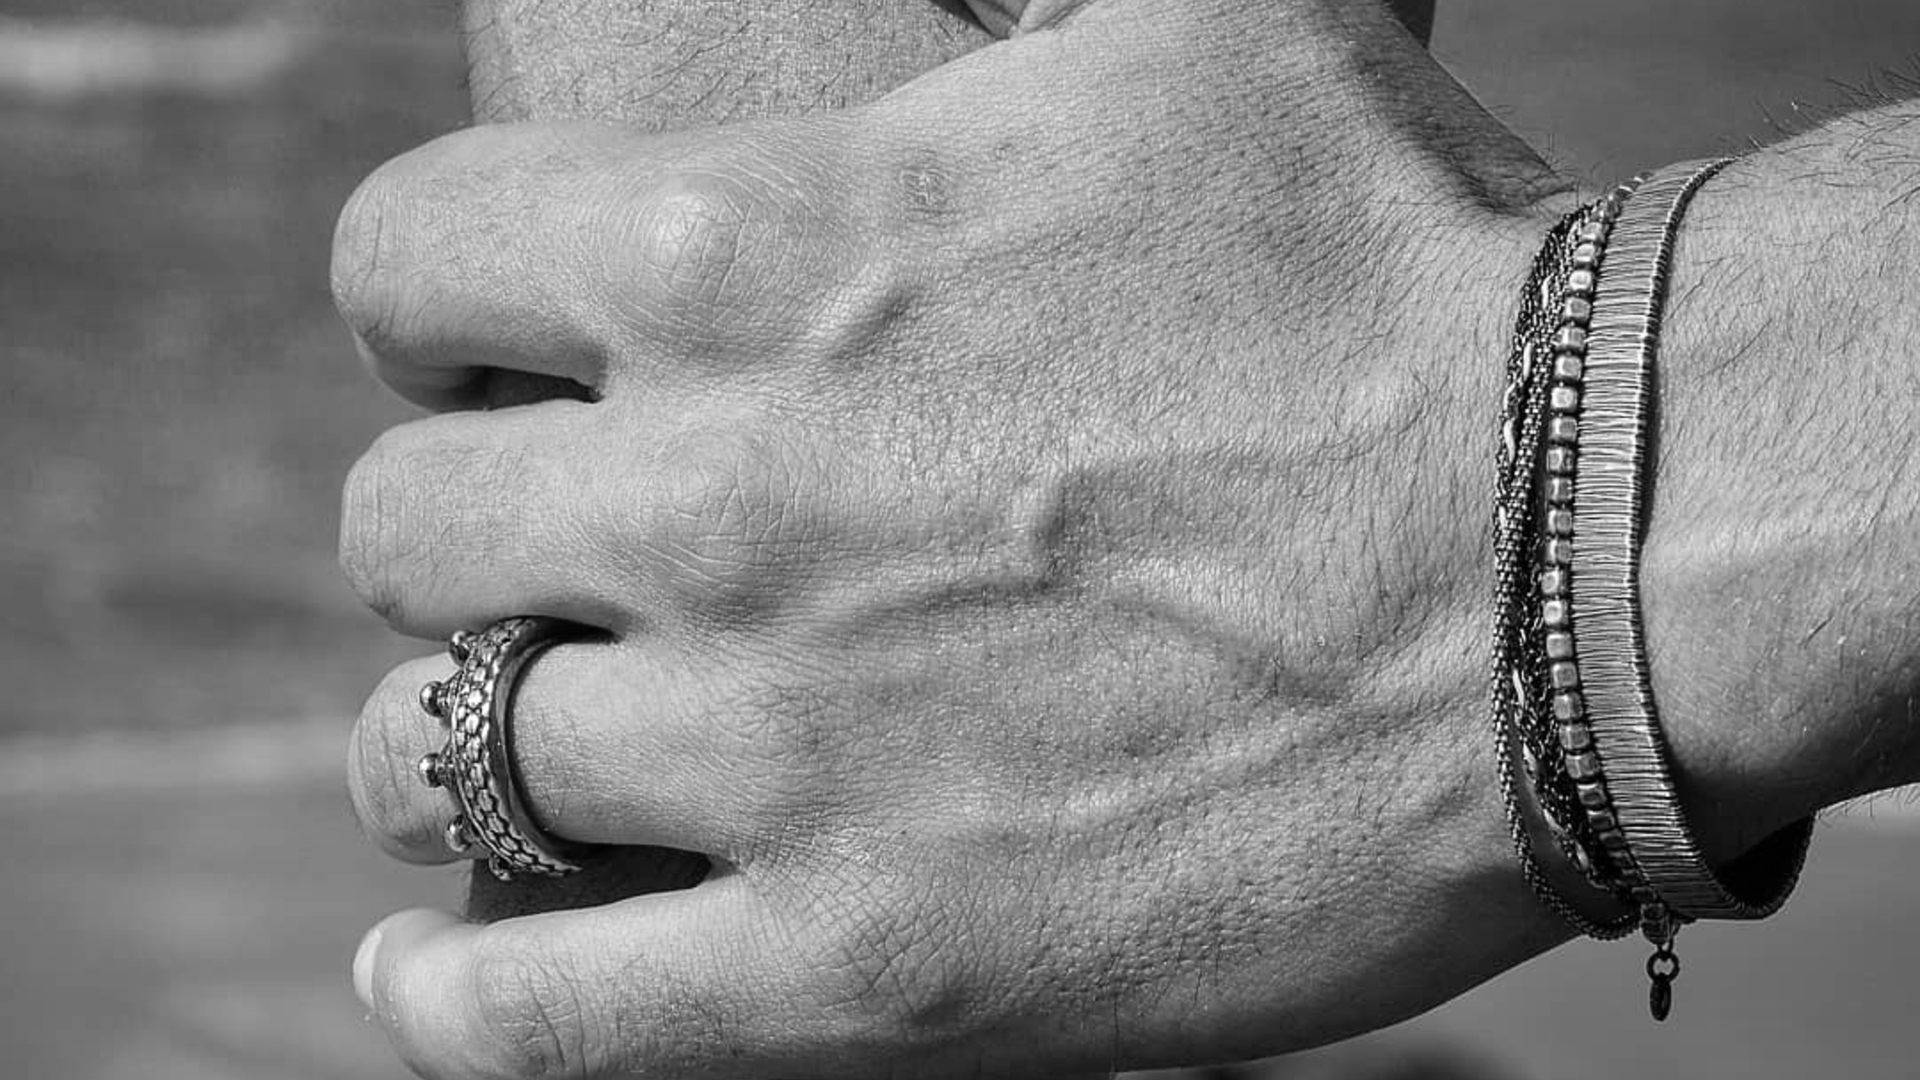 Man's hand with jewelry